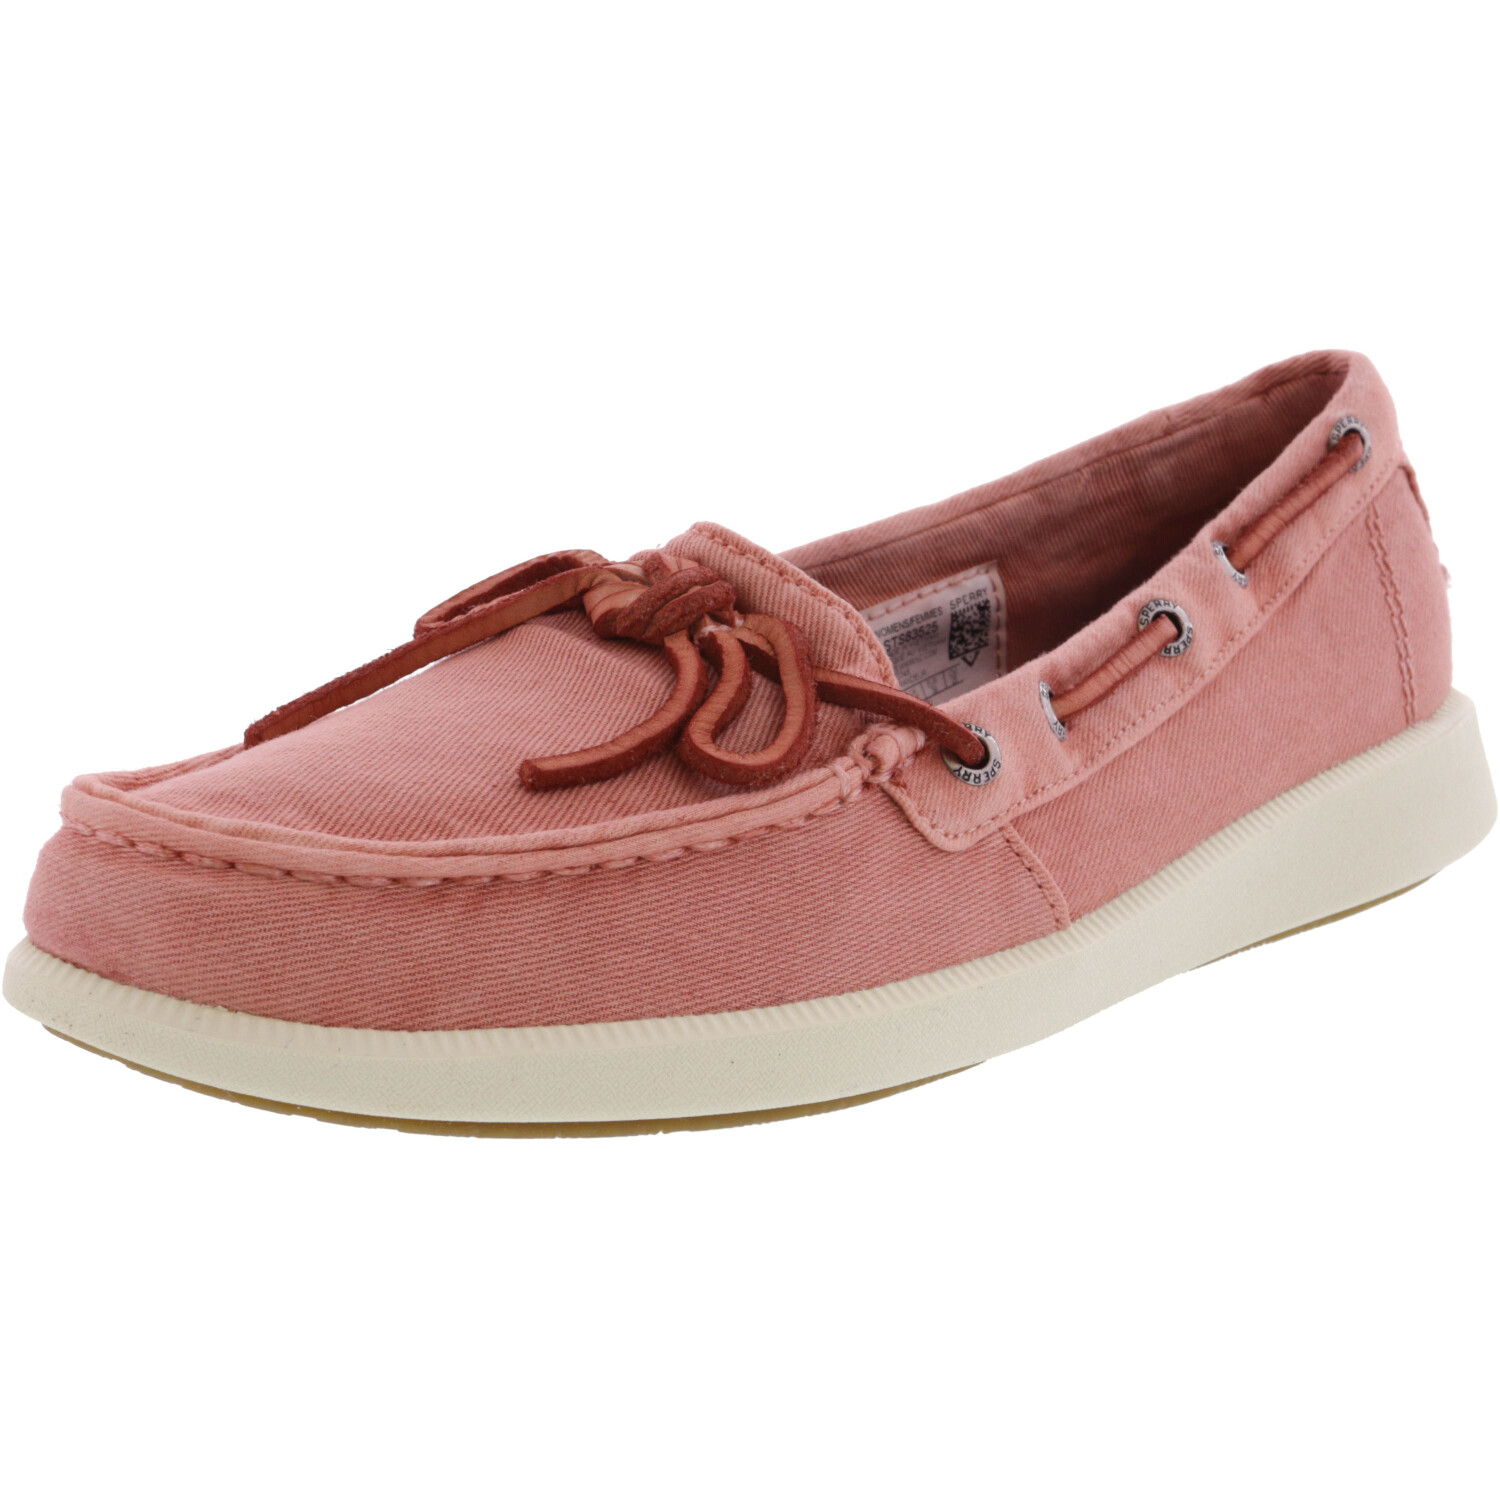 Sperry Women's Oasis Canal Red Low Top Canvas Boating - 12M